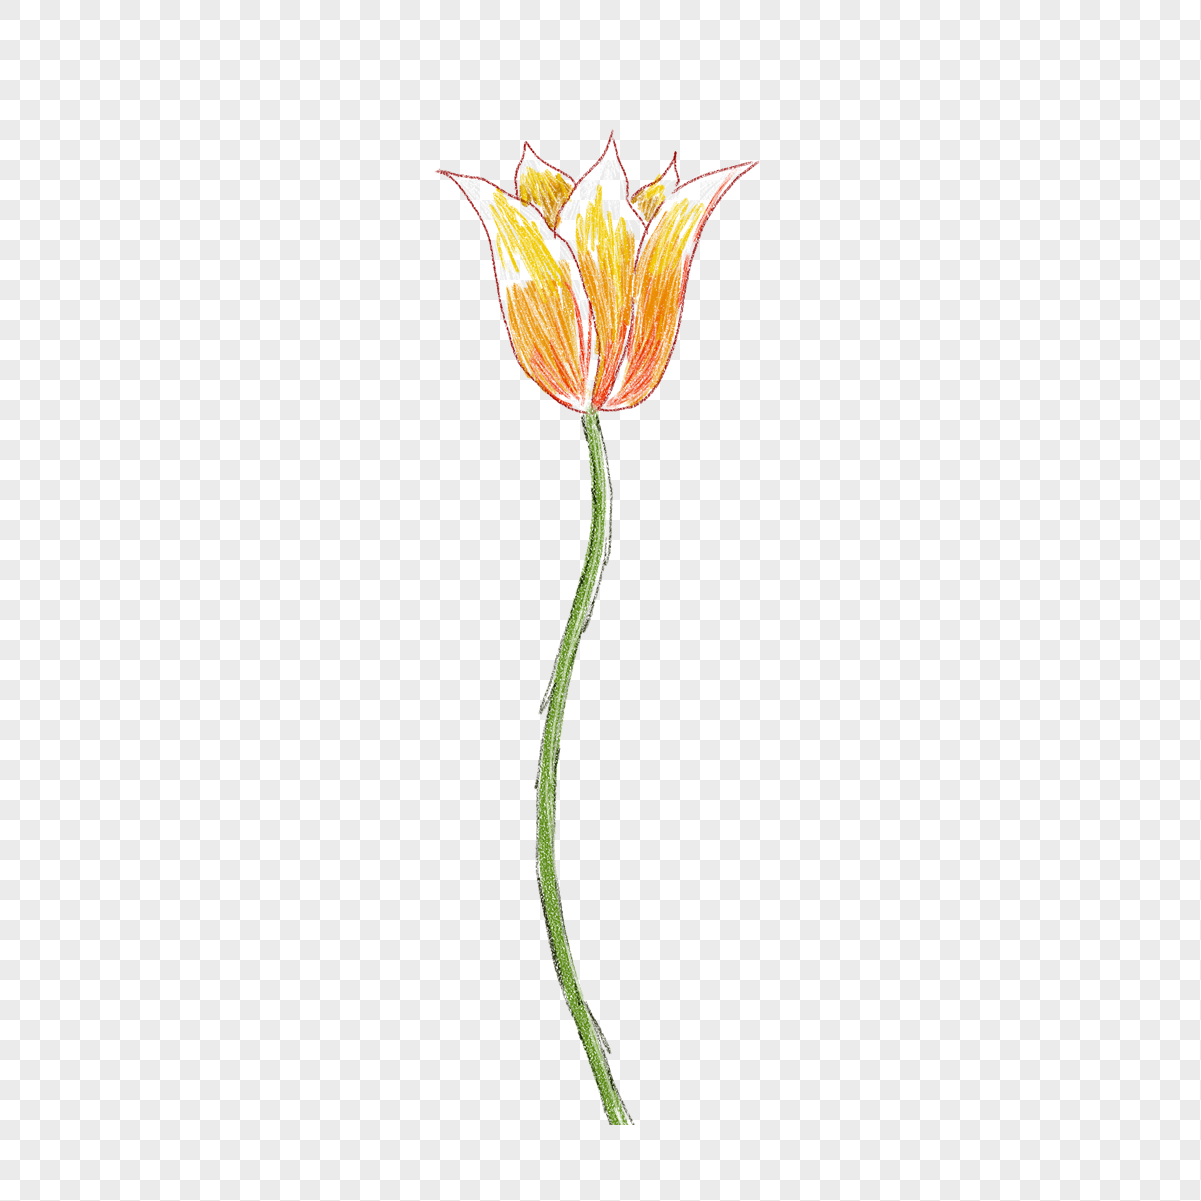 Yellow Flowers Crayon Drawing Png Imagepicture Free Download